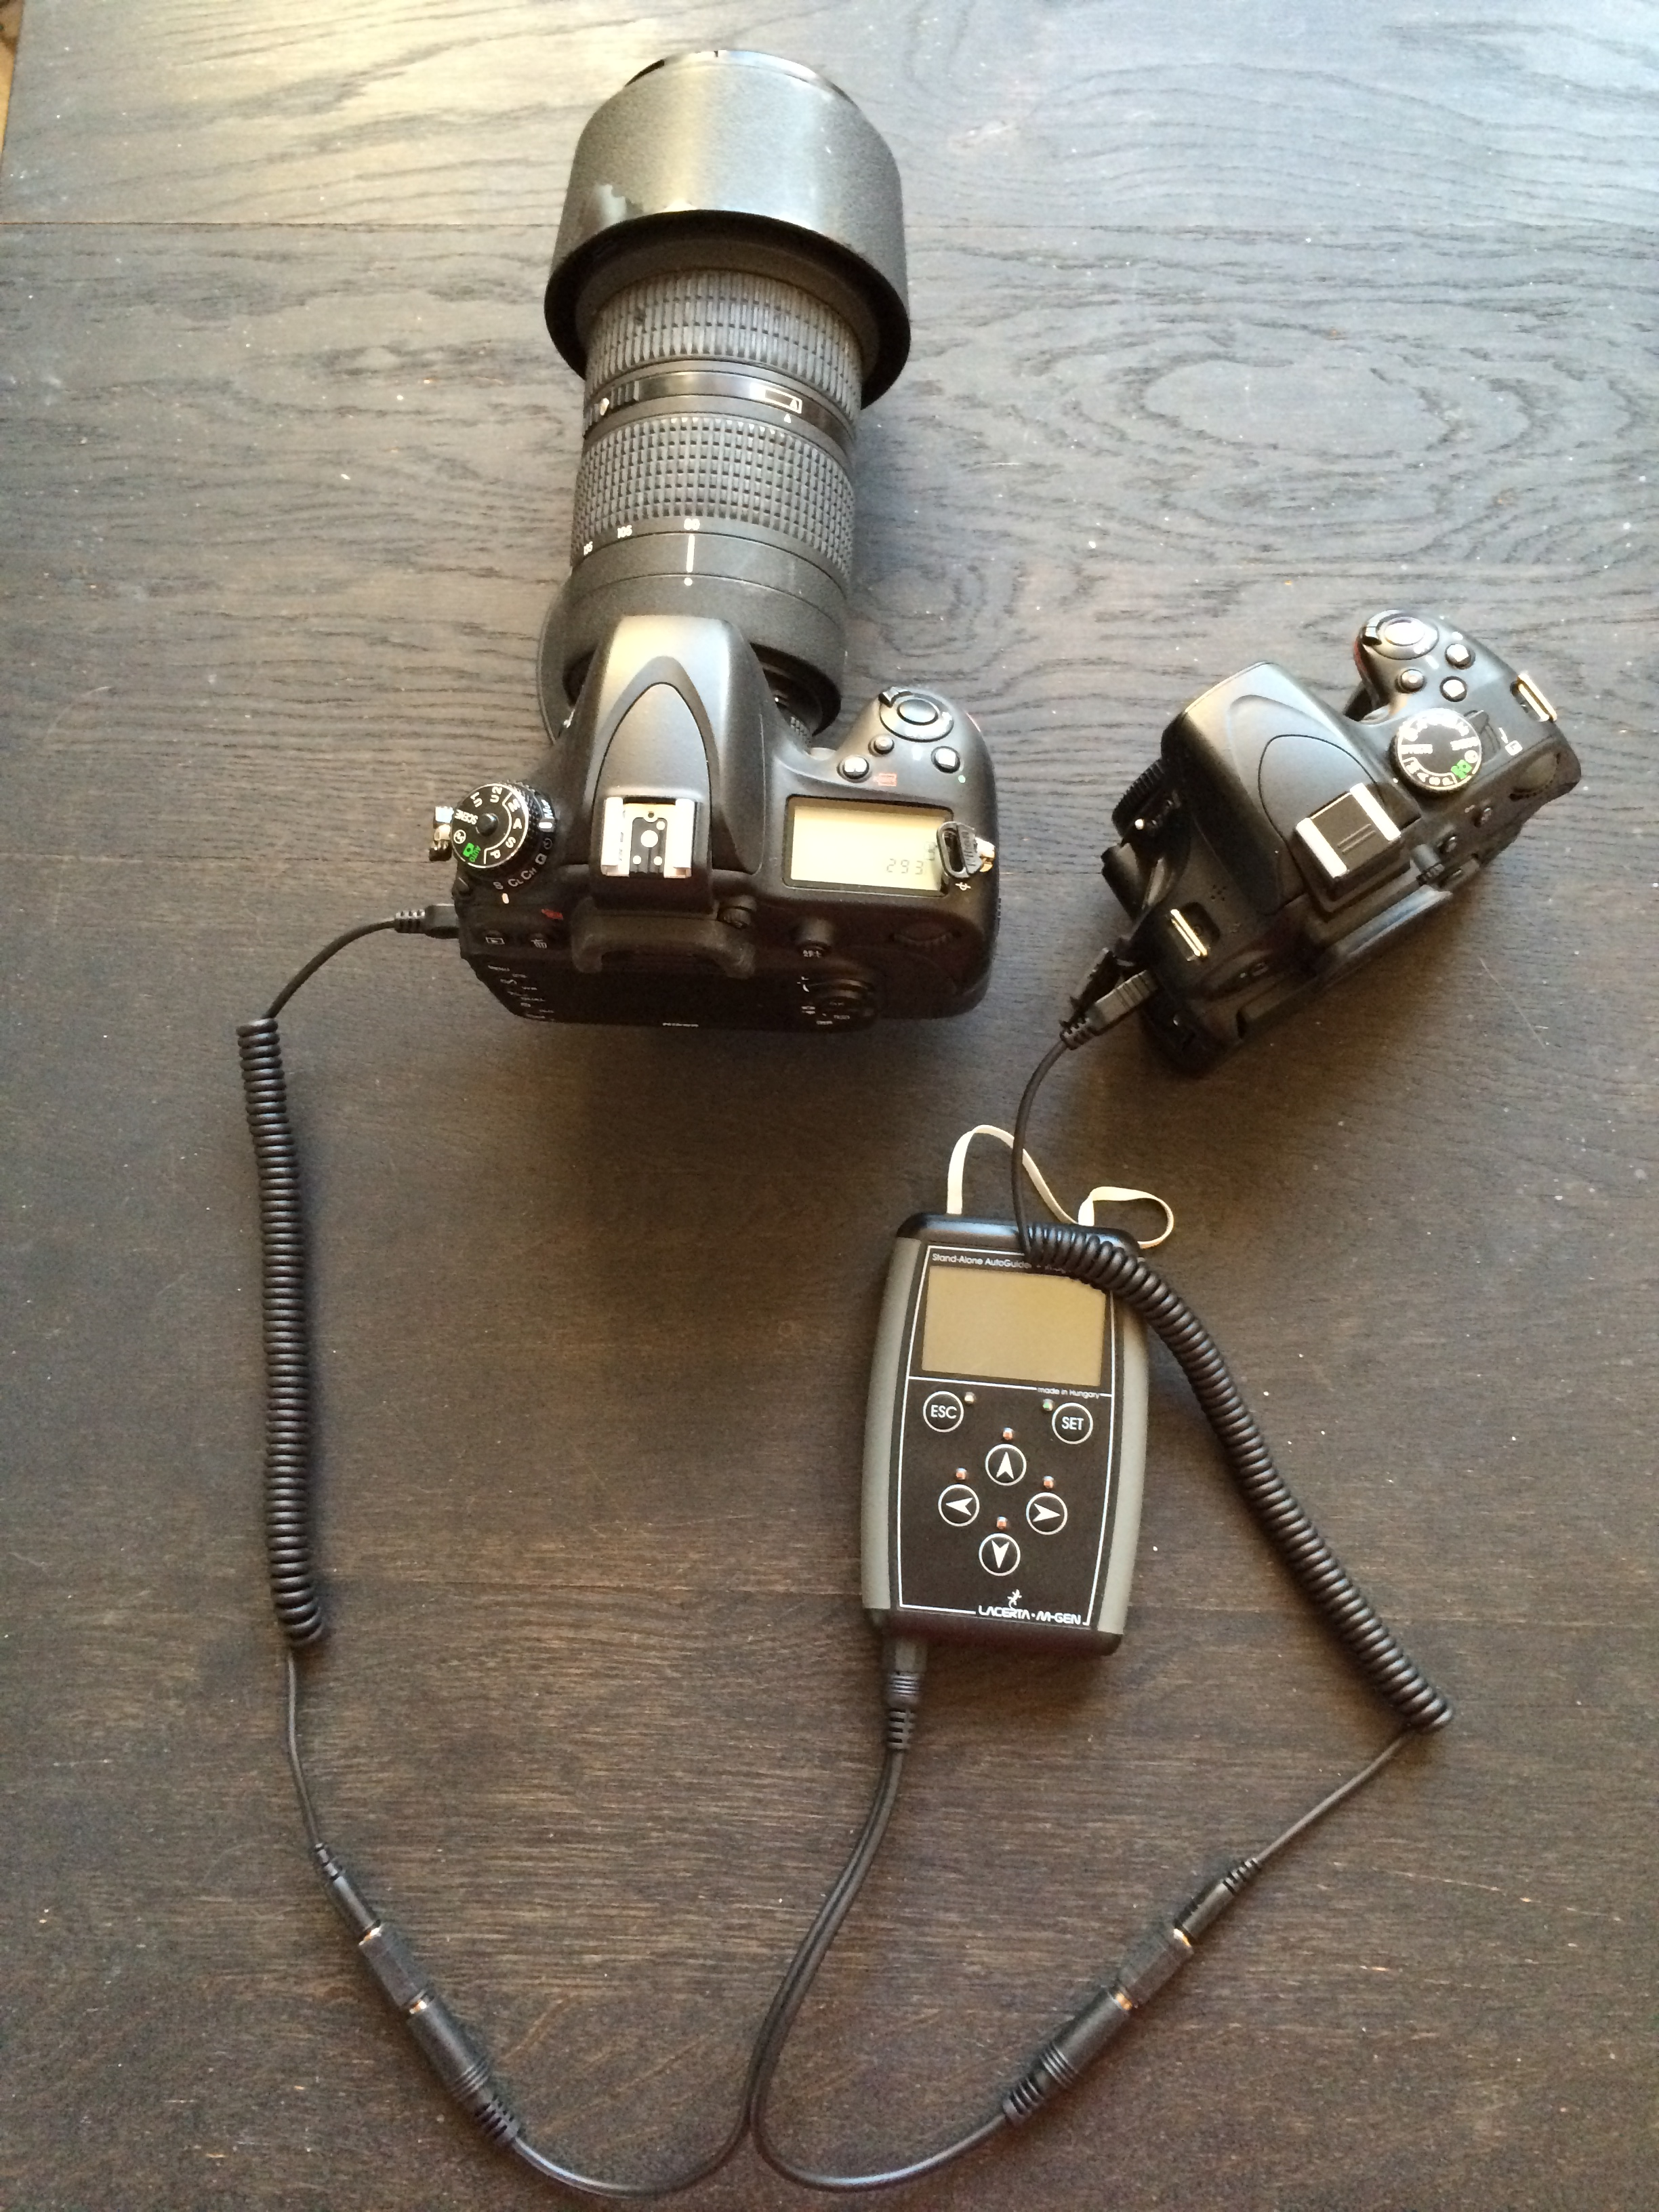 Controlling two camera's with the Lacerta MGEN